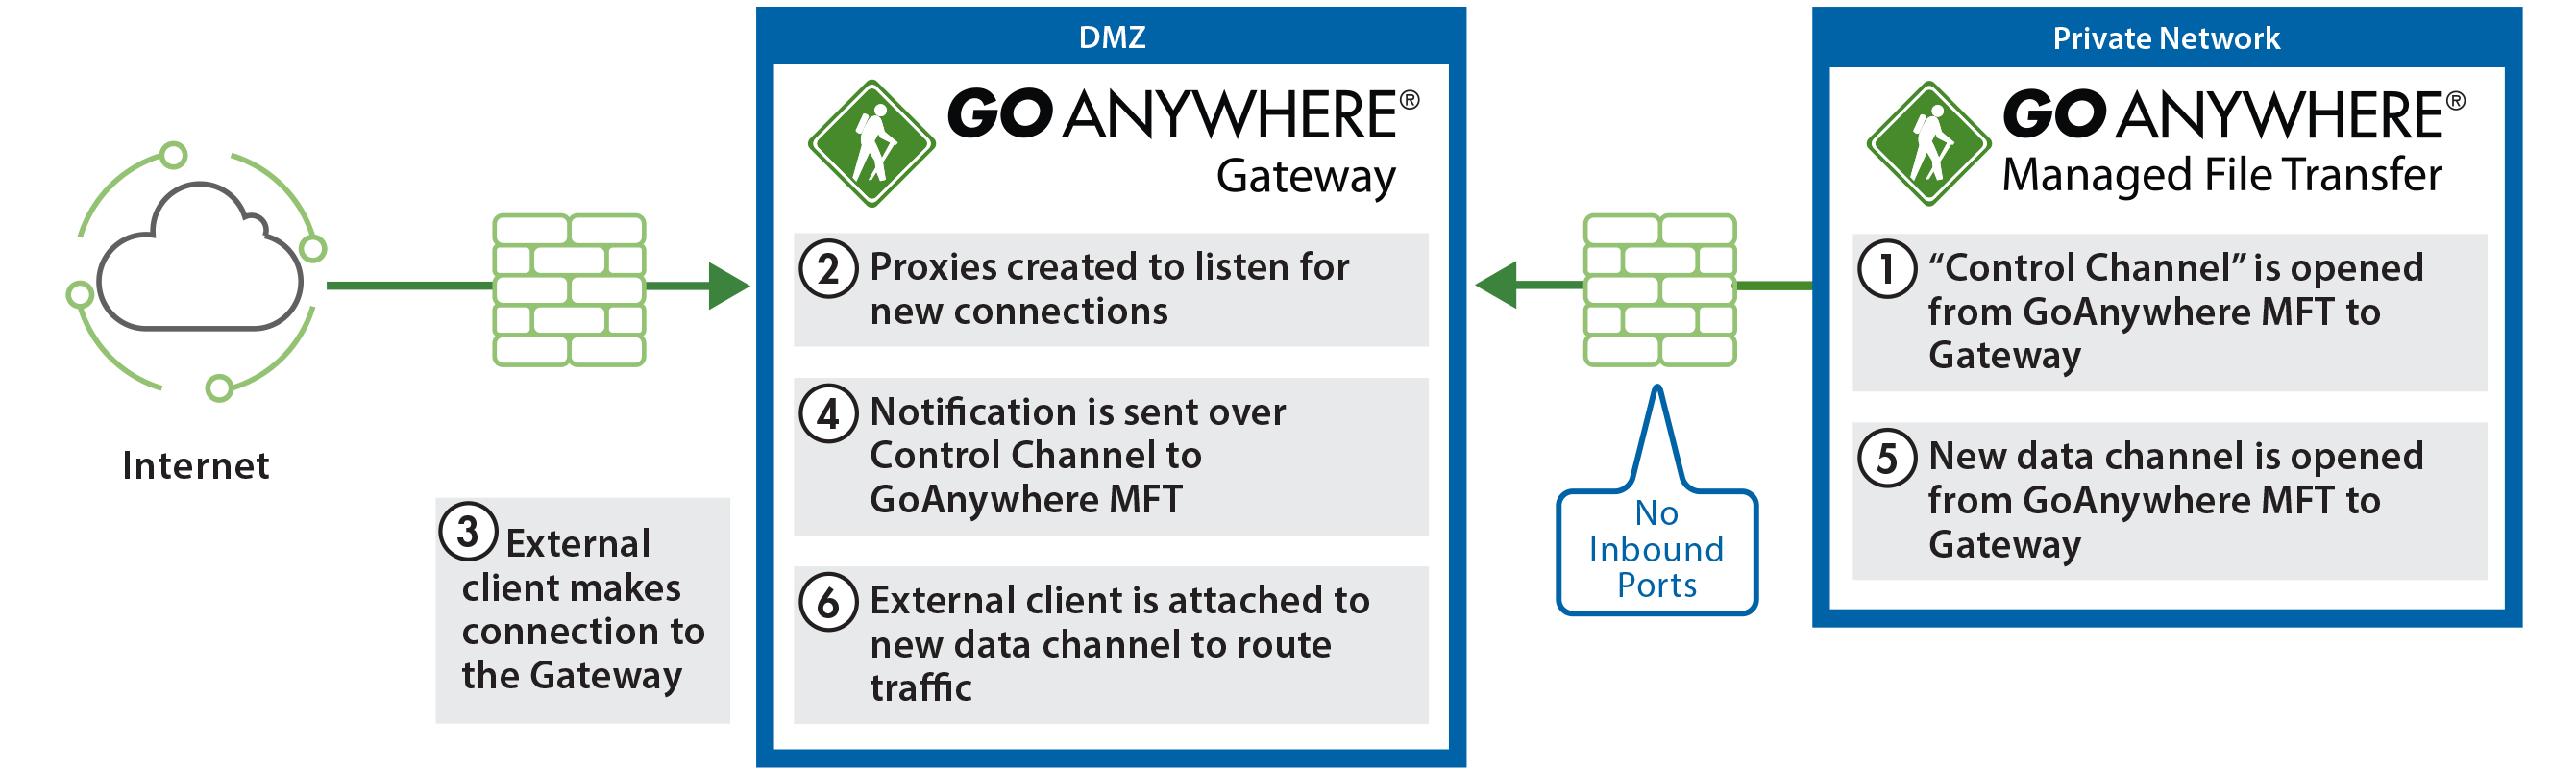 How Gateway Reverse and Forward Proxy for DMZ works